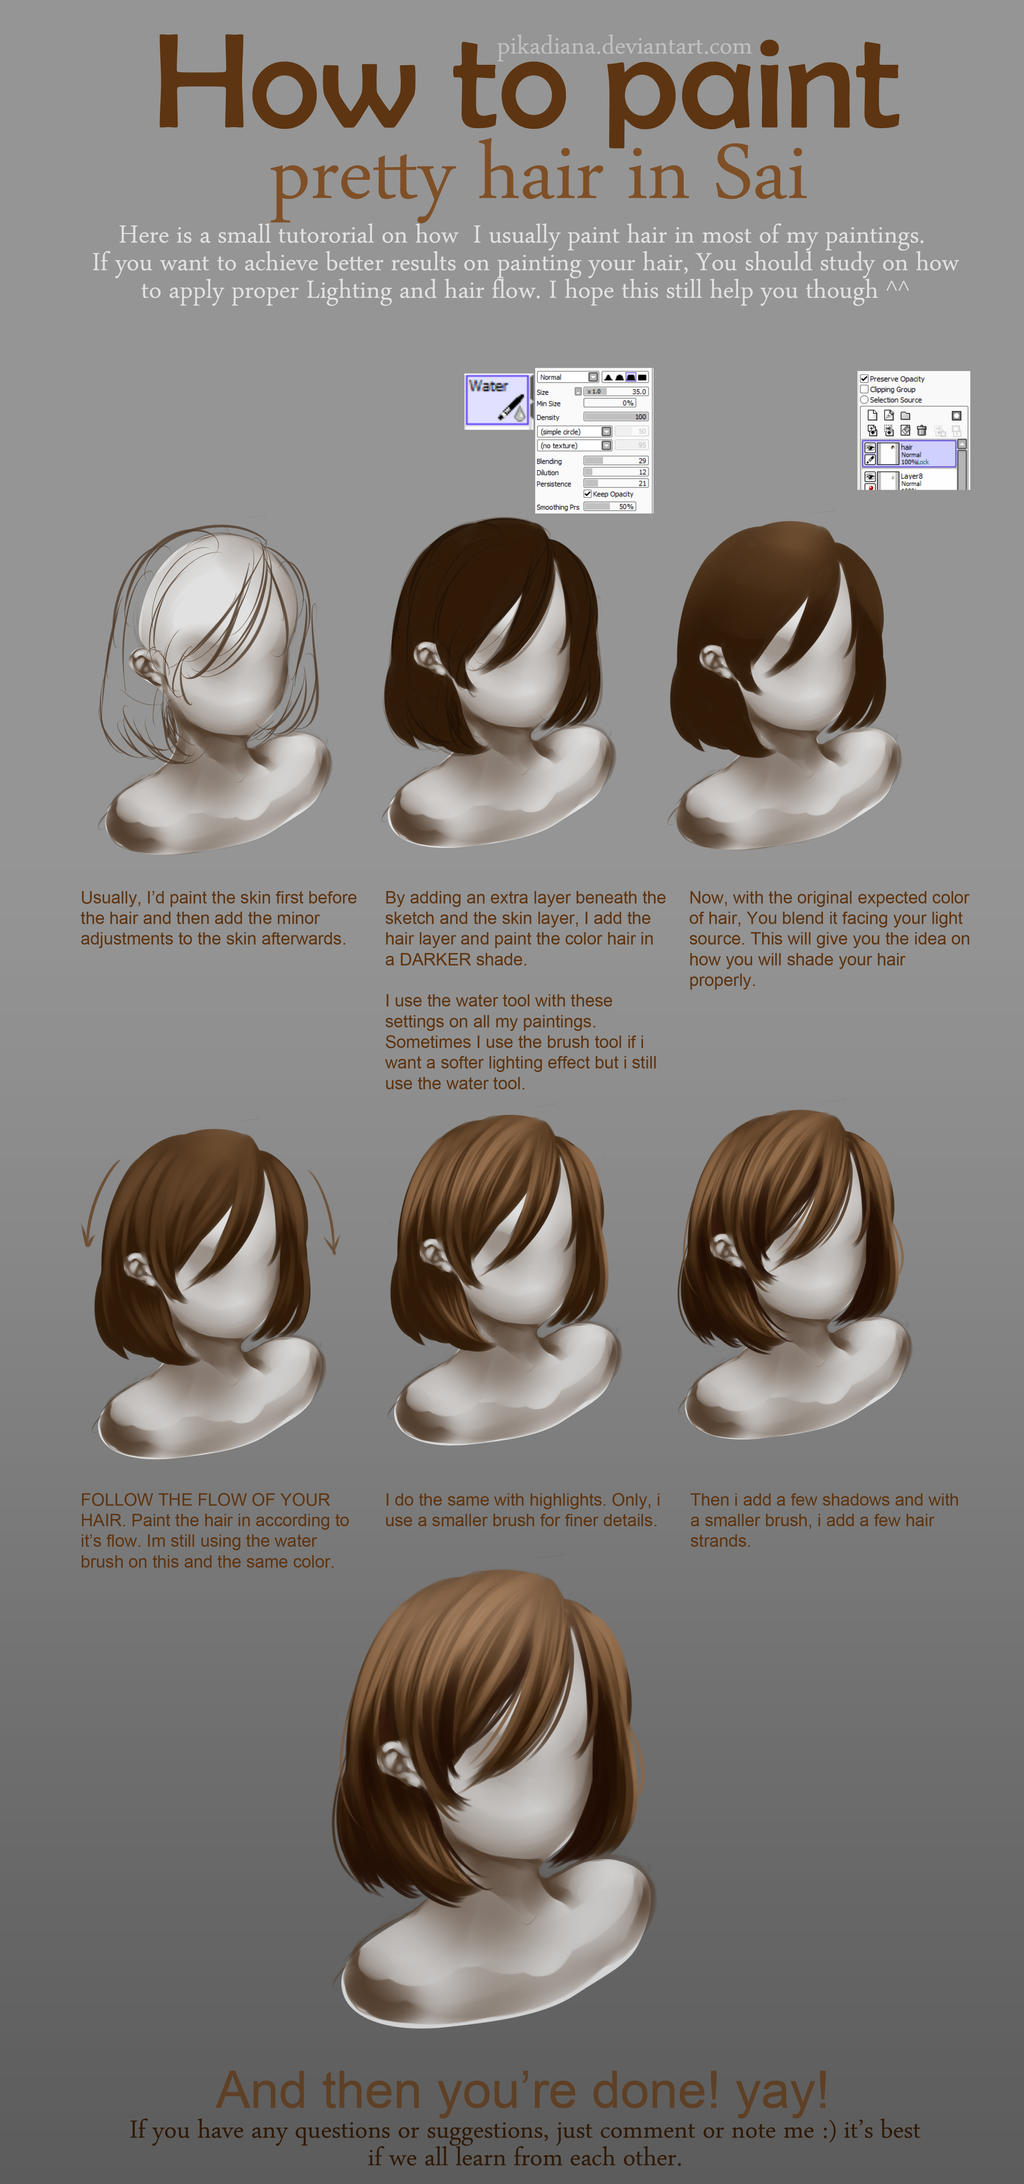 TUTORIAL: How to paint purrty hair with SAI by pikadiana